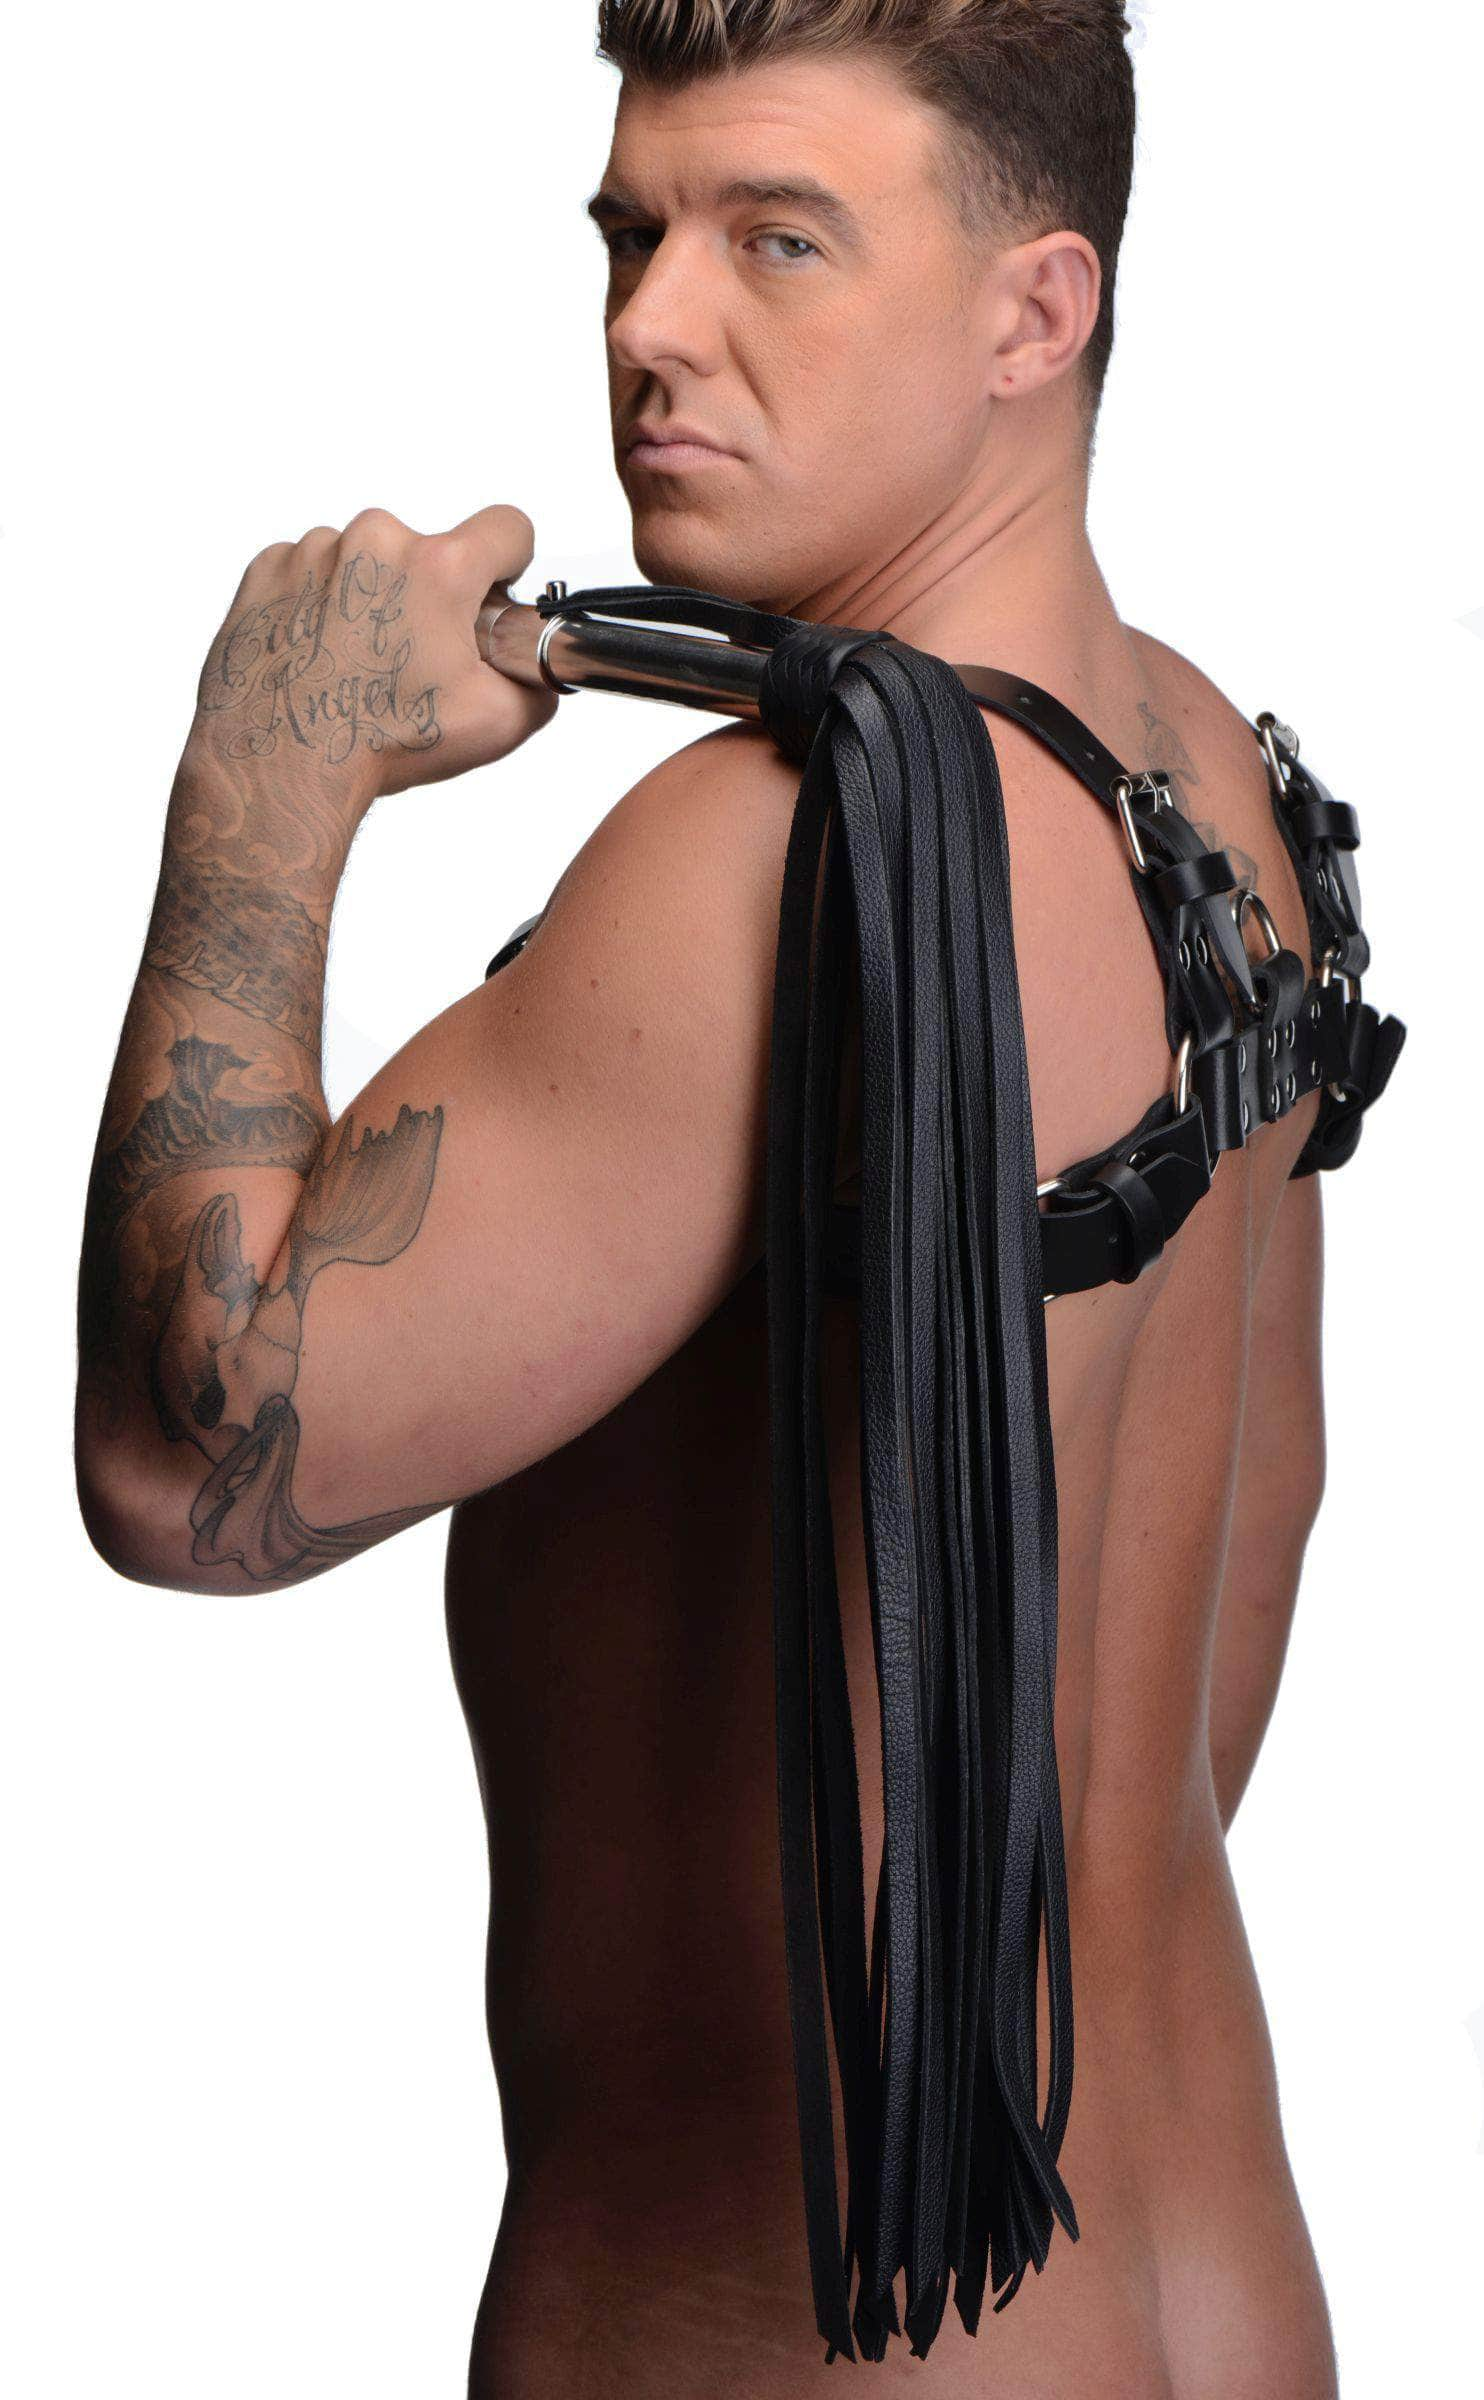 Leather Flogger With Stainless Steel Handle